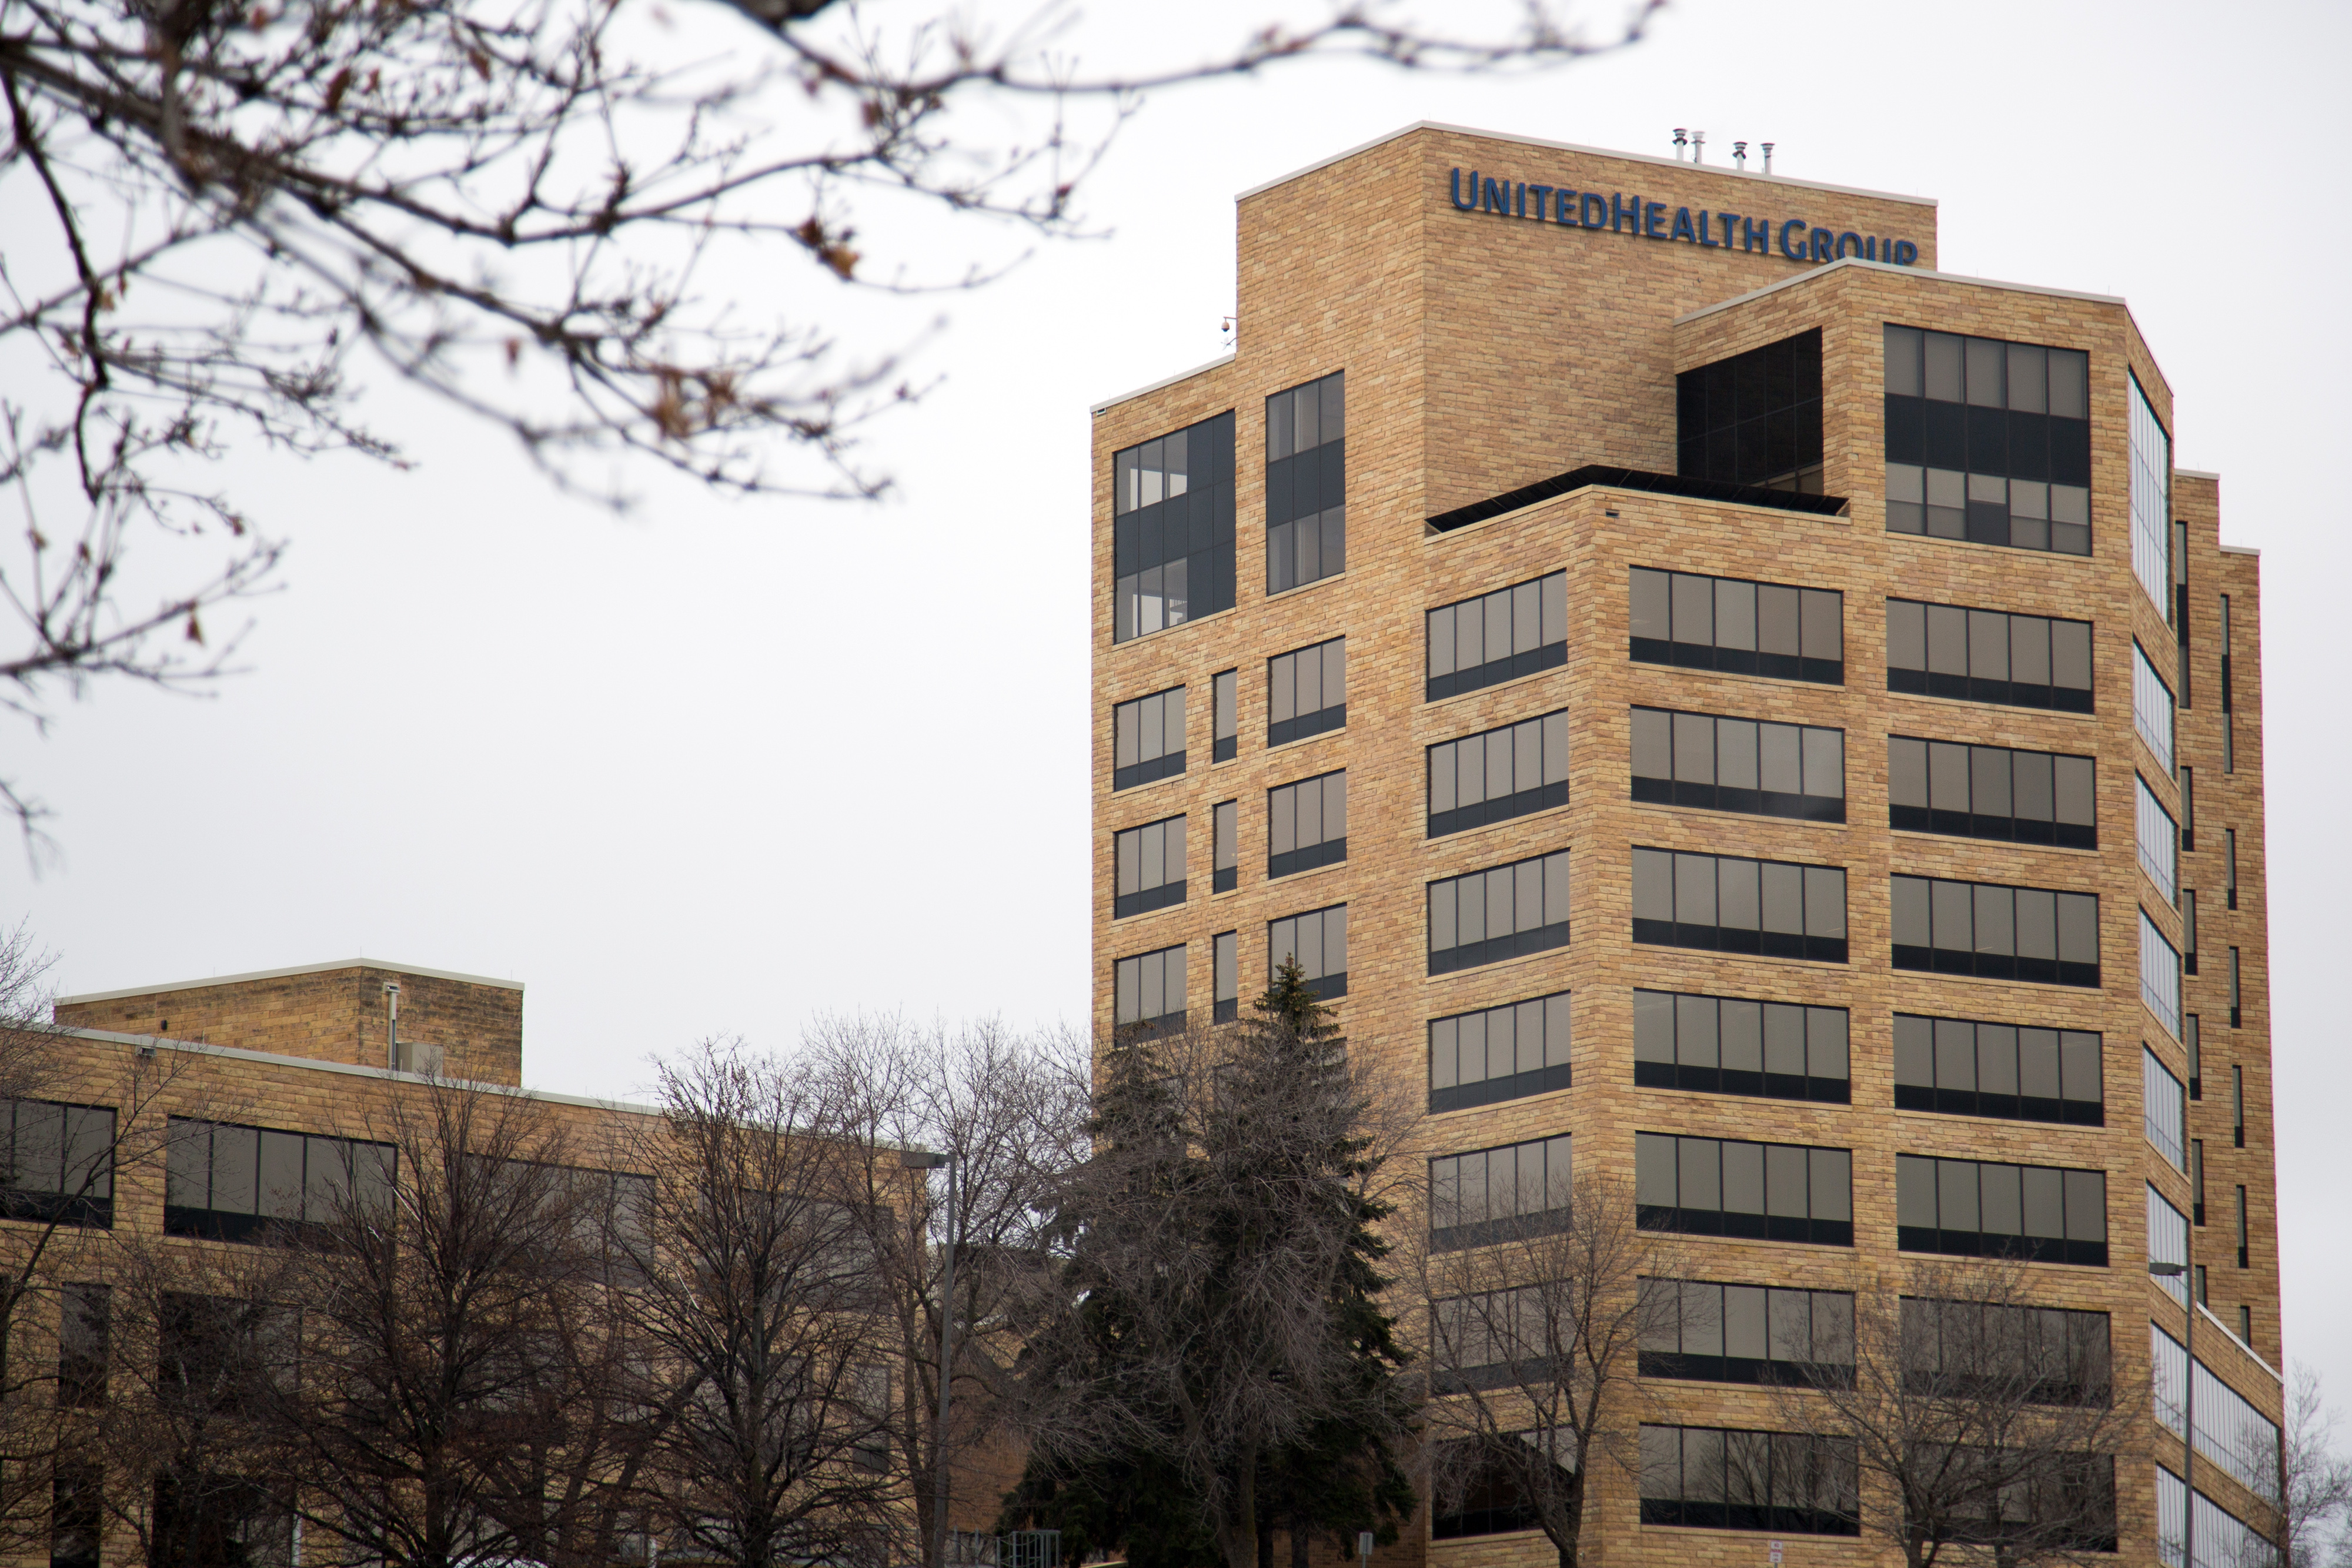 UnitedHealth Group Headquarters As They Take on CVS With Walgreens Deal